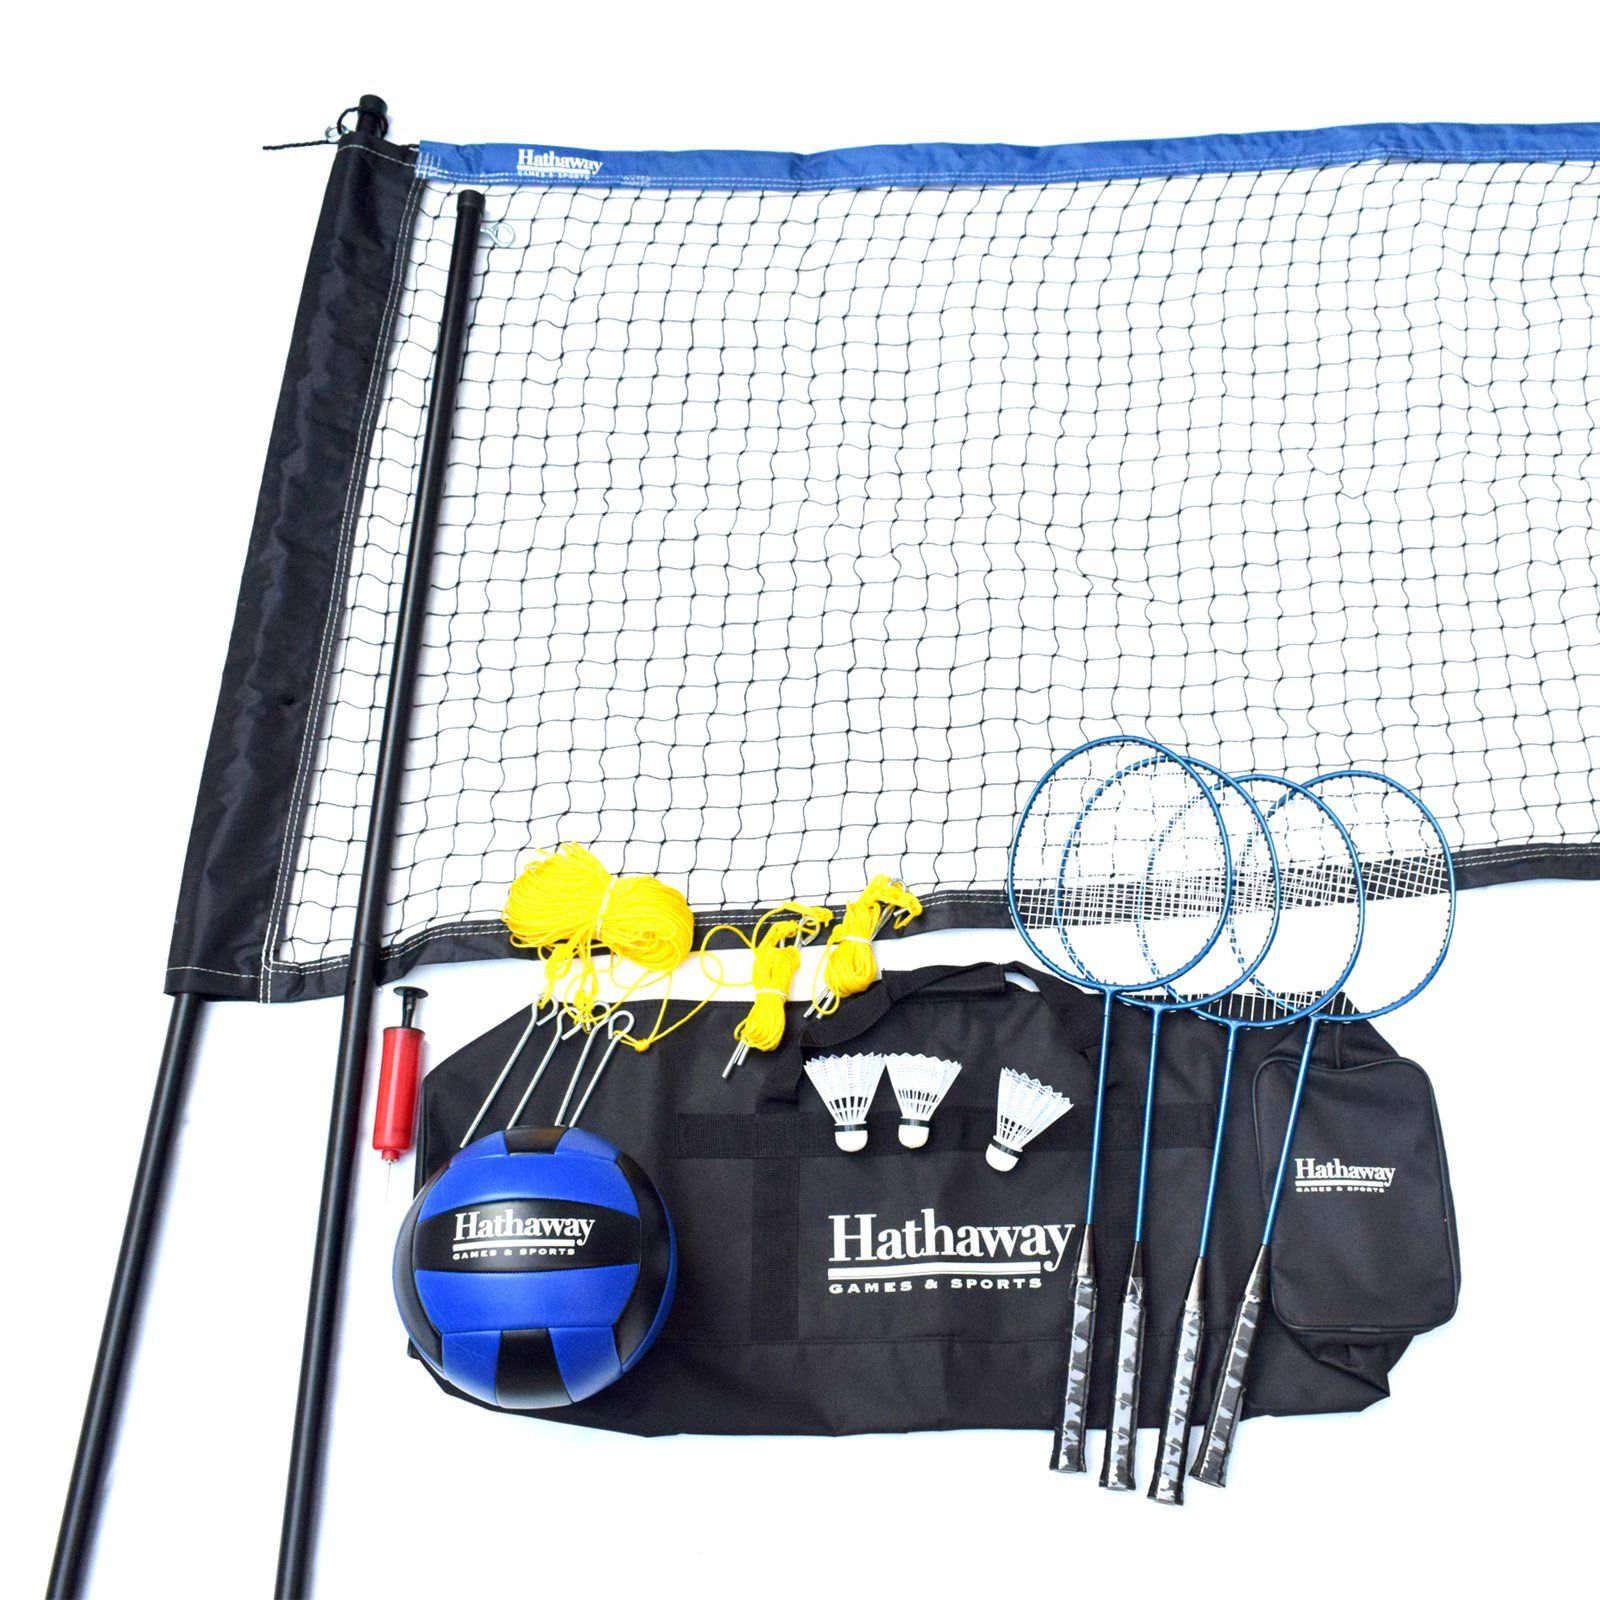 Hathaway Volleyball Badminton Complete Combo Set Badminton Set Shuttlecocks Badminton